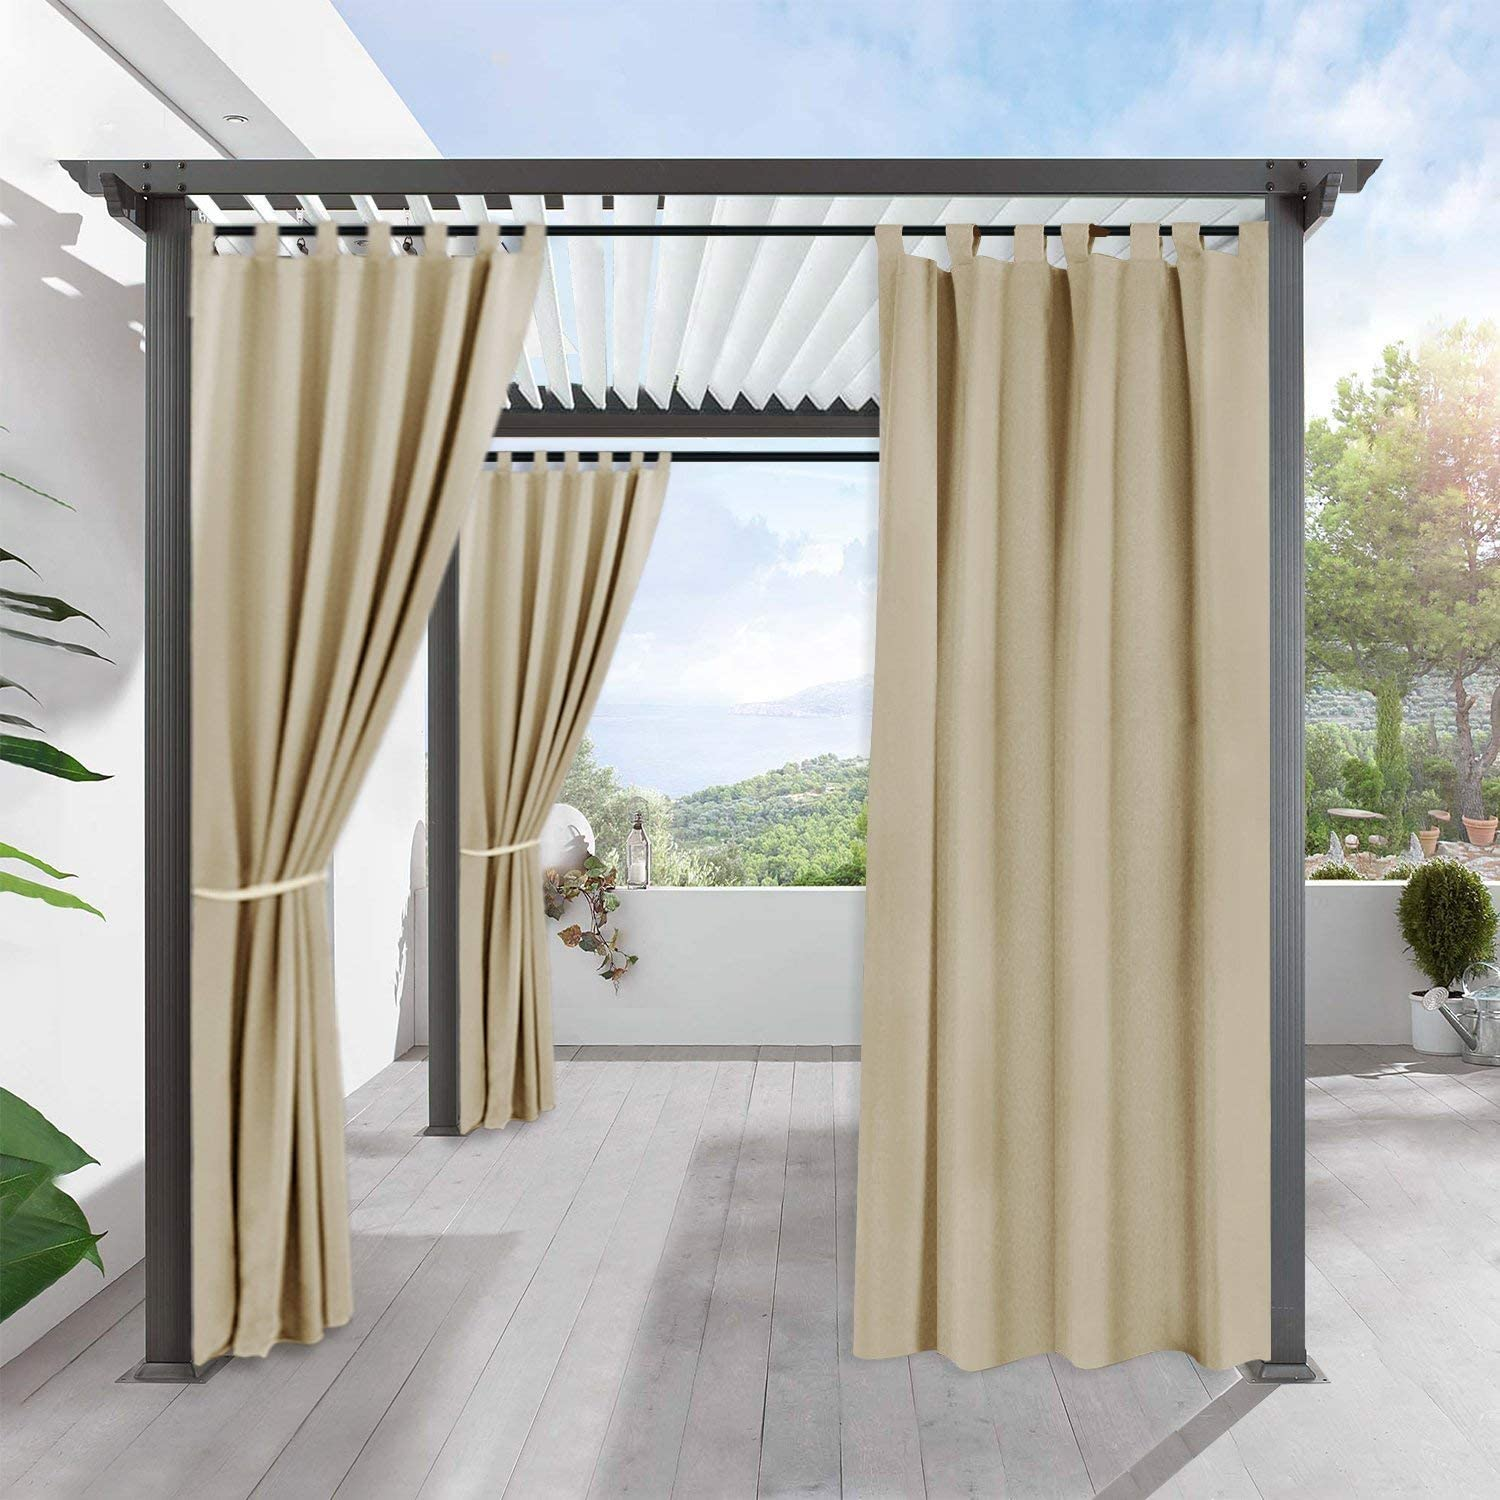 RYB HOME Outdoor Curtains for Patio - Waterproof & Sunlight Block Out Insulated Drapery Privacy for Front Porch Garden Backyard Sliding Glass Door, 1 Panel, 52 Wide x 95 Inches Long, Cream Beige